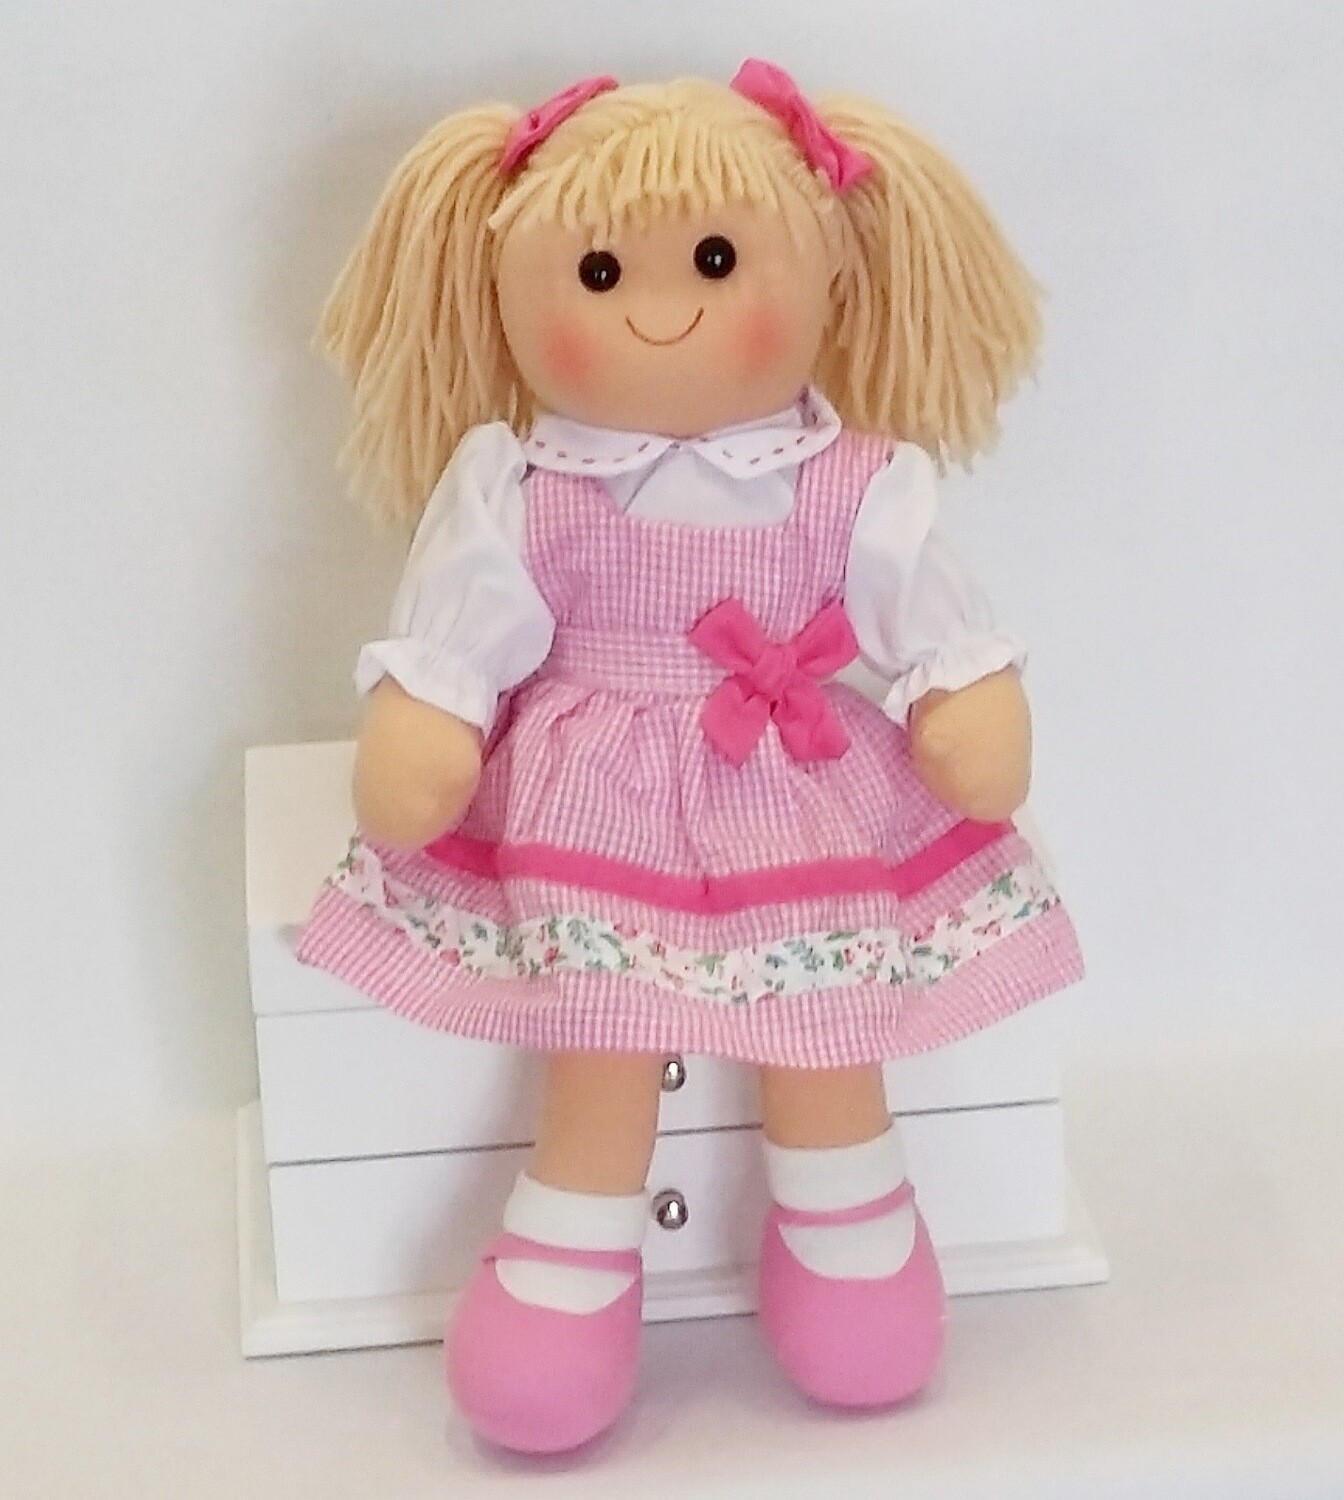 Collectable Doll - Lulu